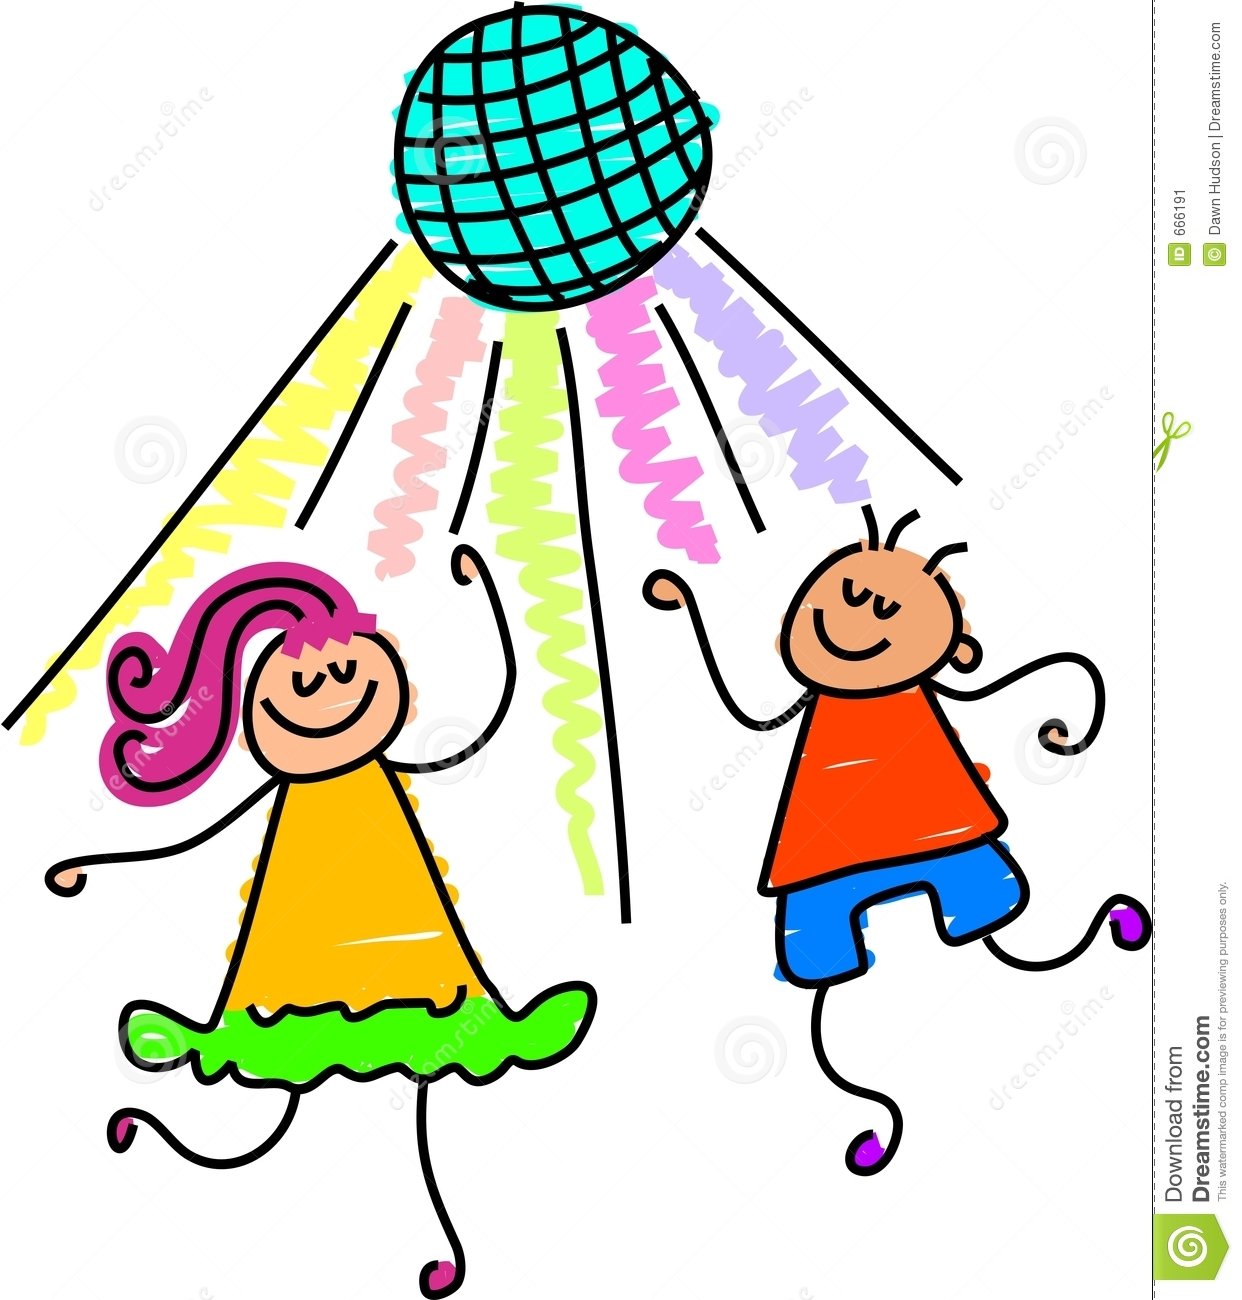 Dance Cartoon Clipart - Clipart Kid